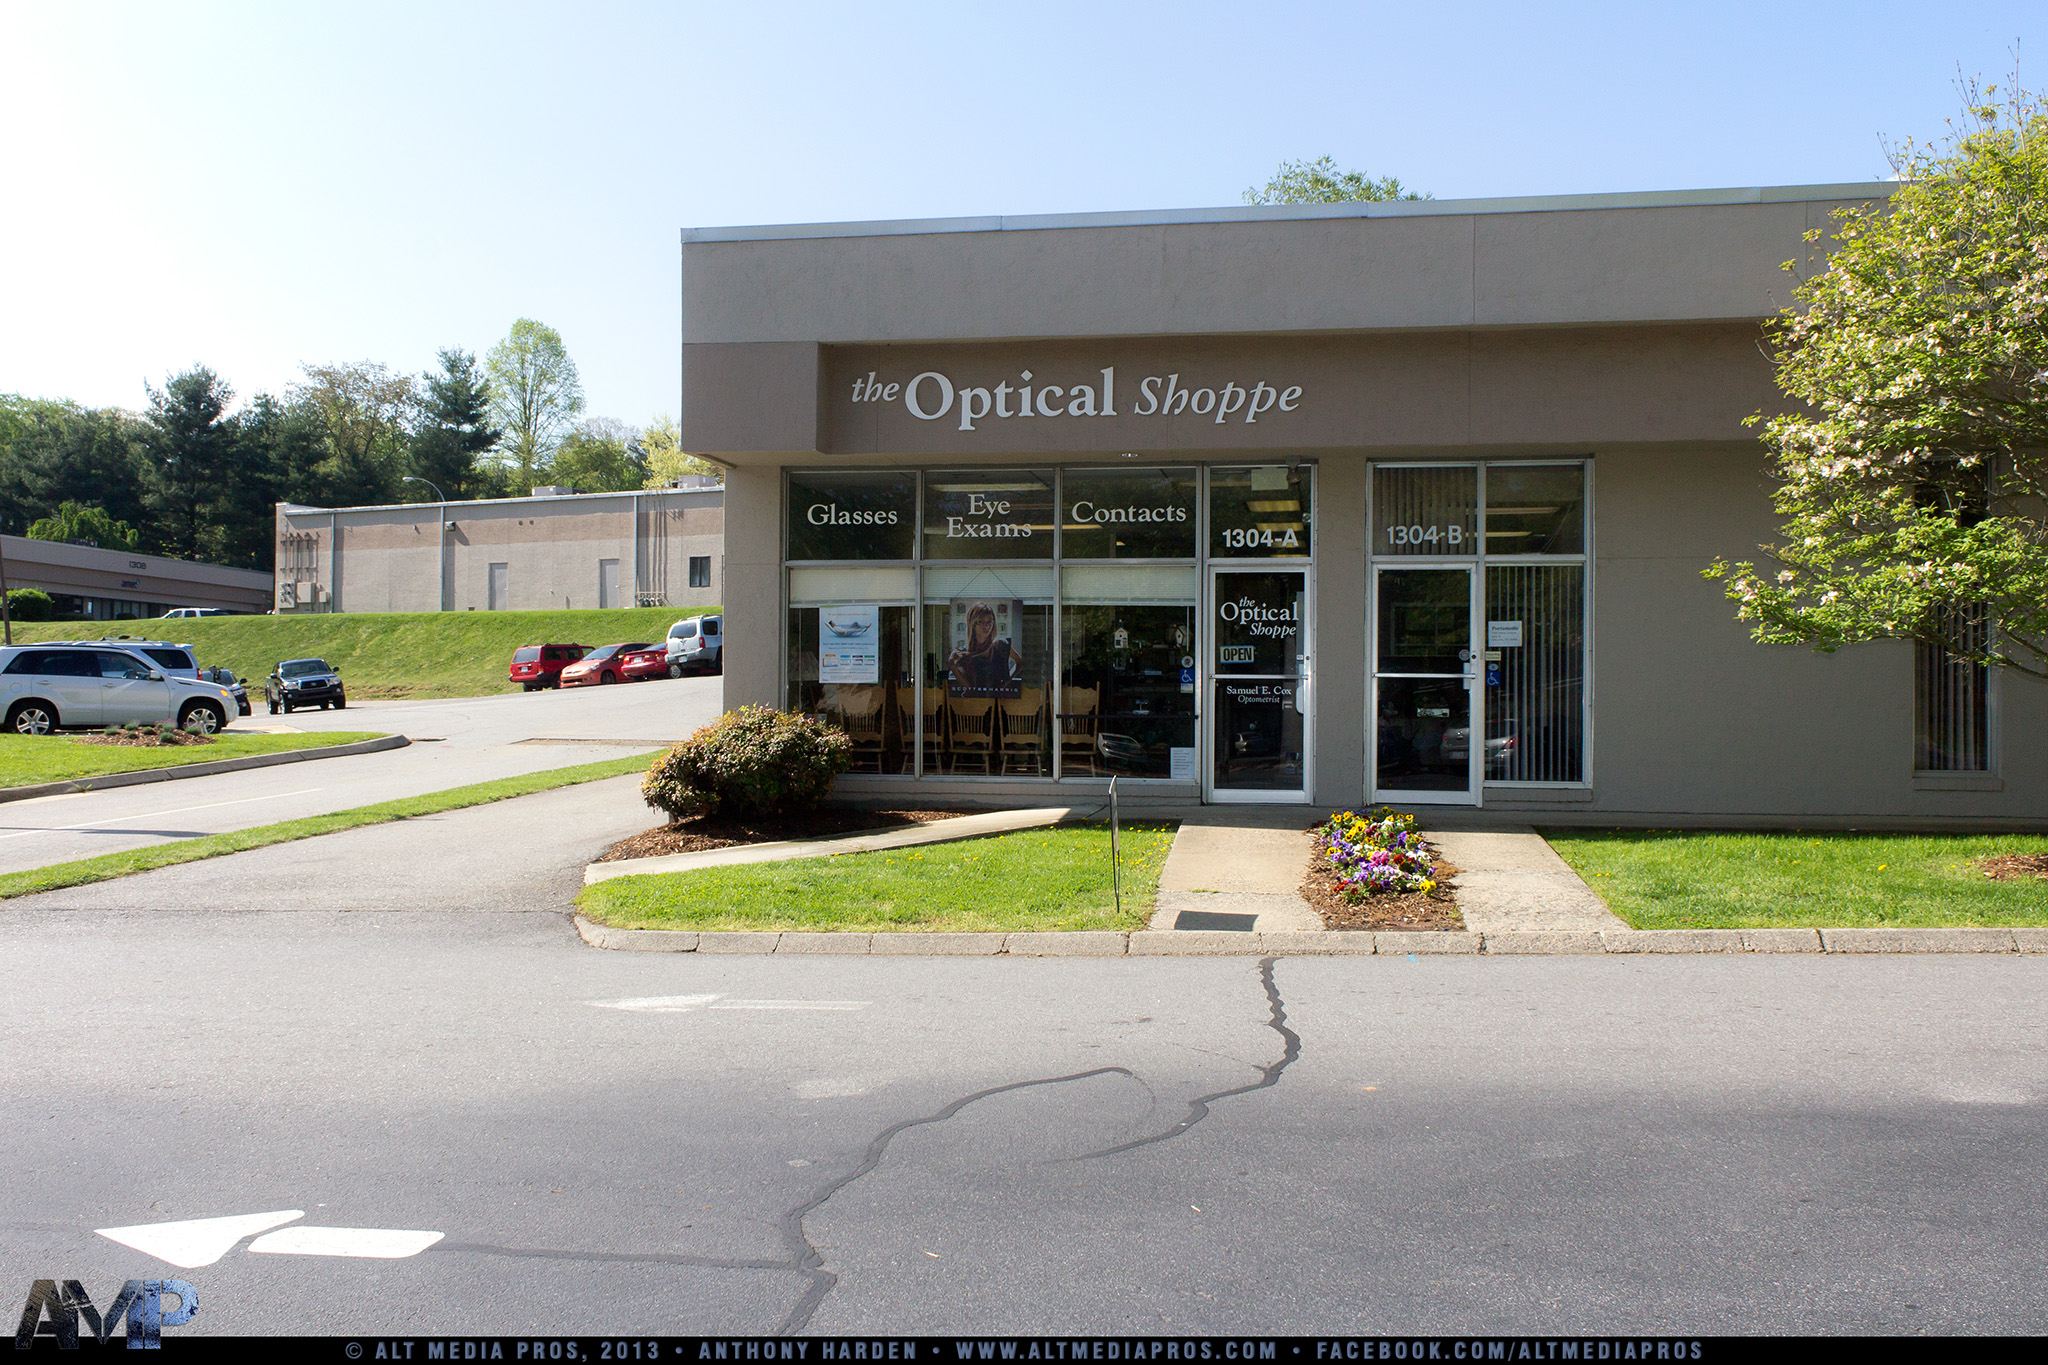 The Optical Shoppe